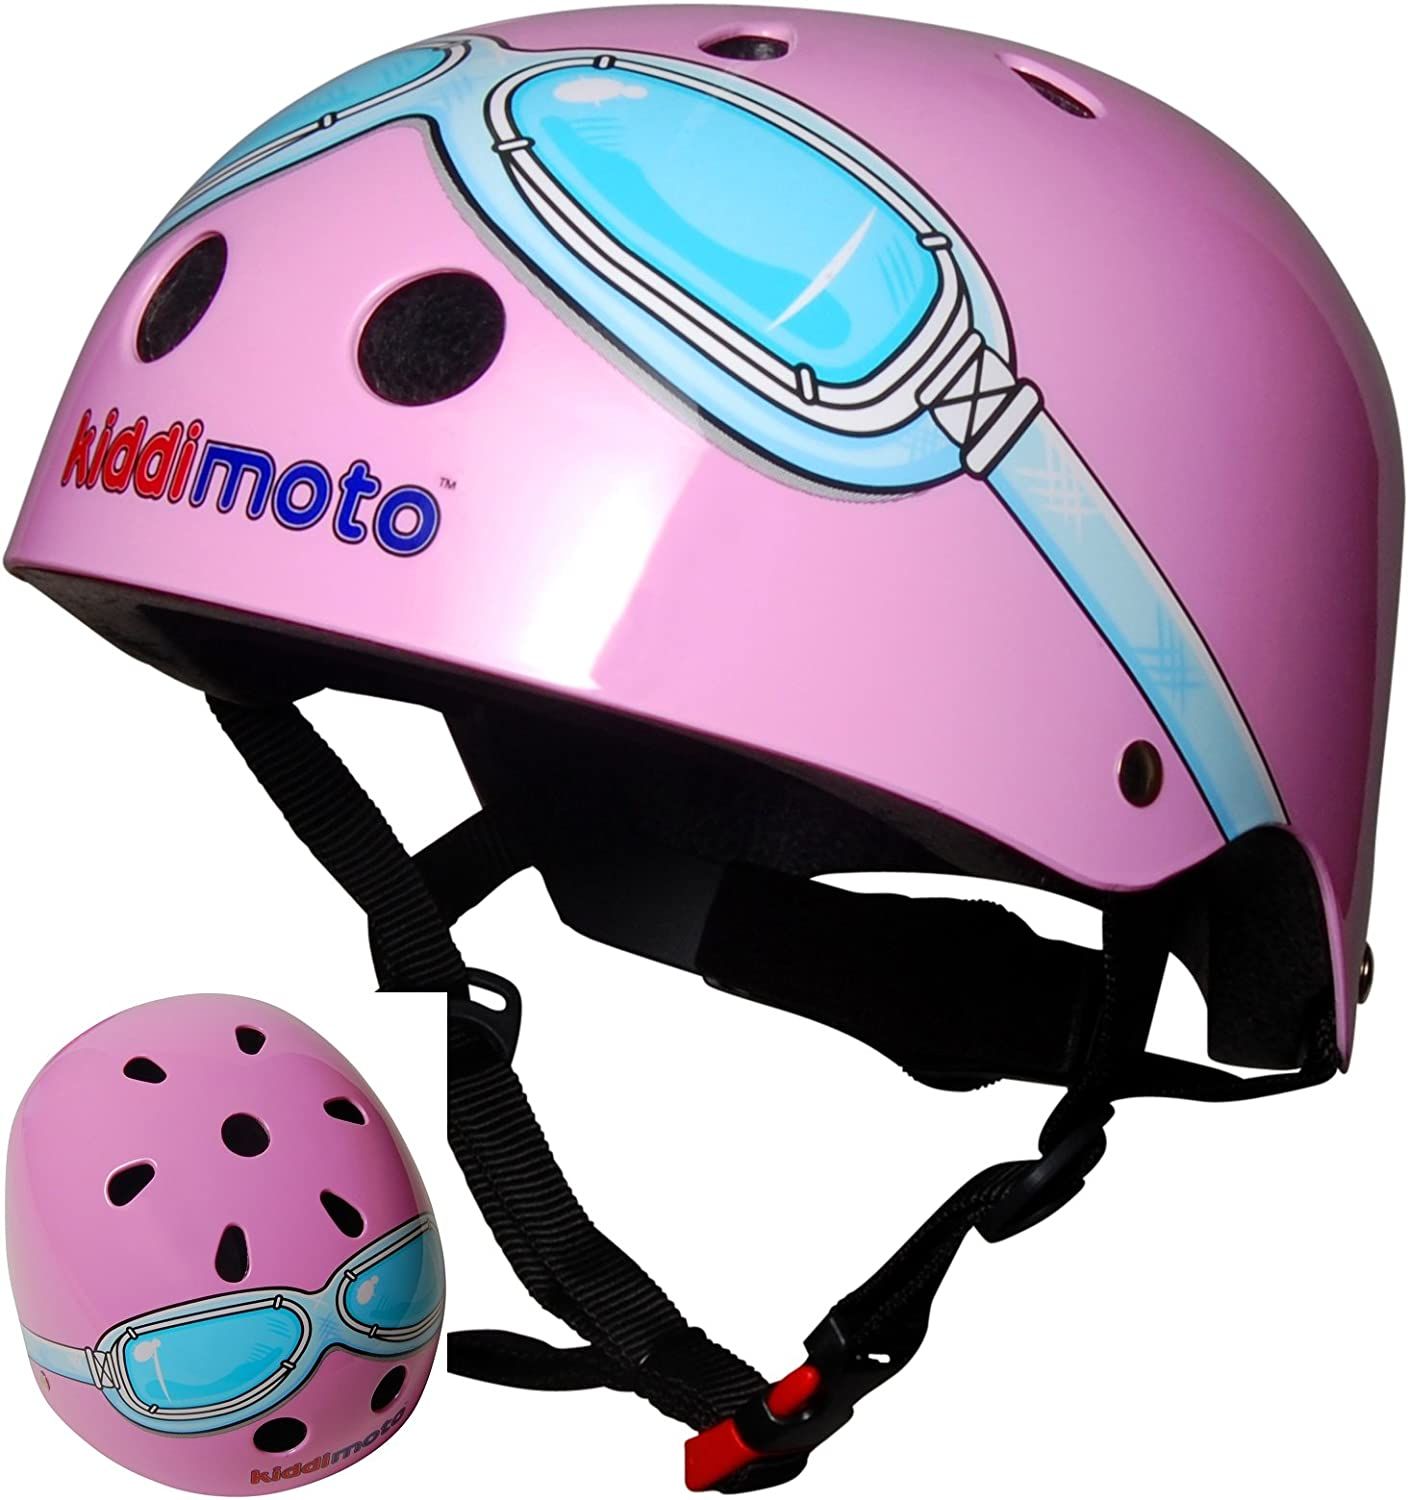 Kiddimoto Helmets Kiddimoto Kids Helmet Pin Amazon Spielzeug